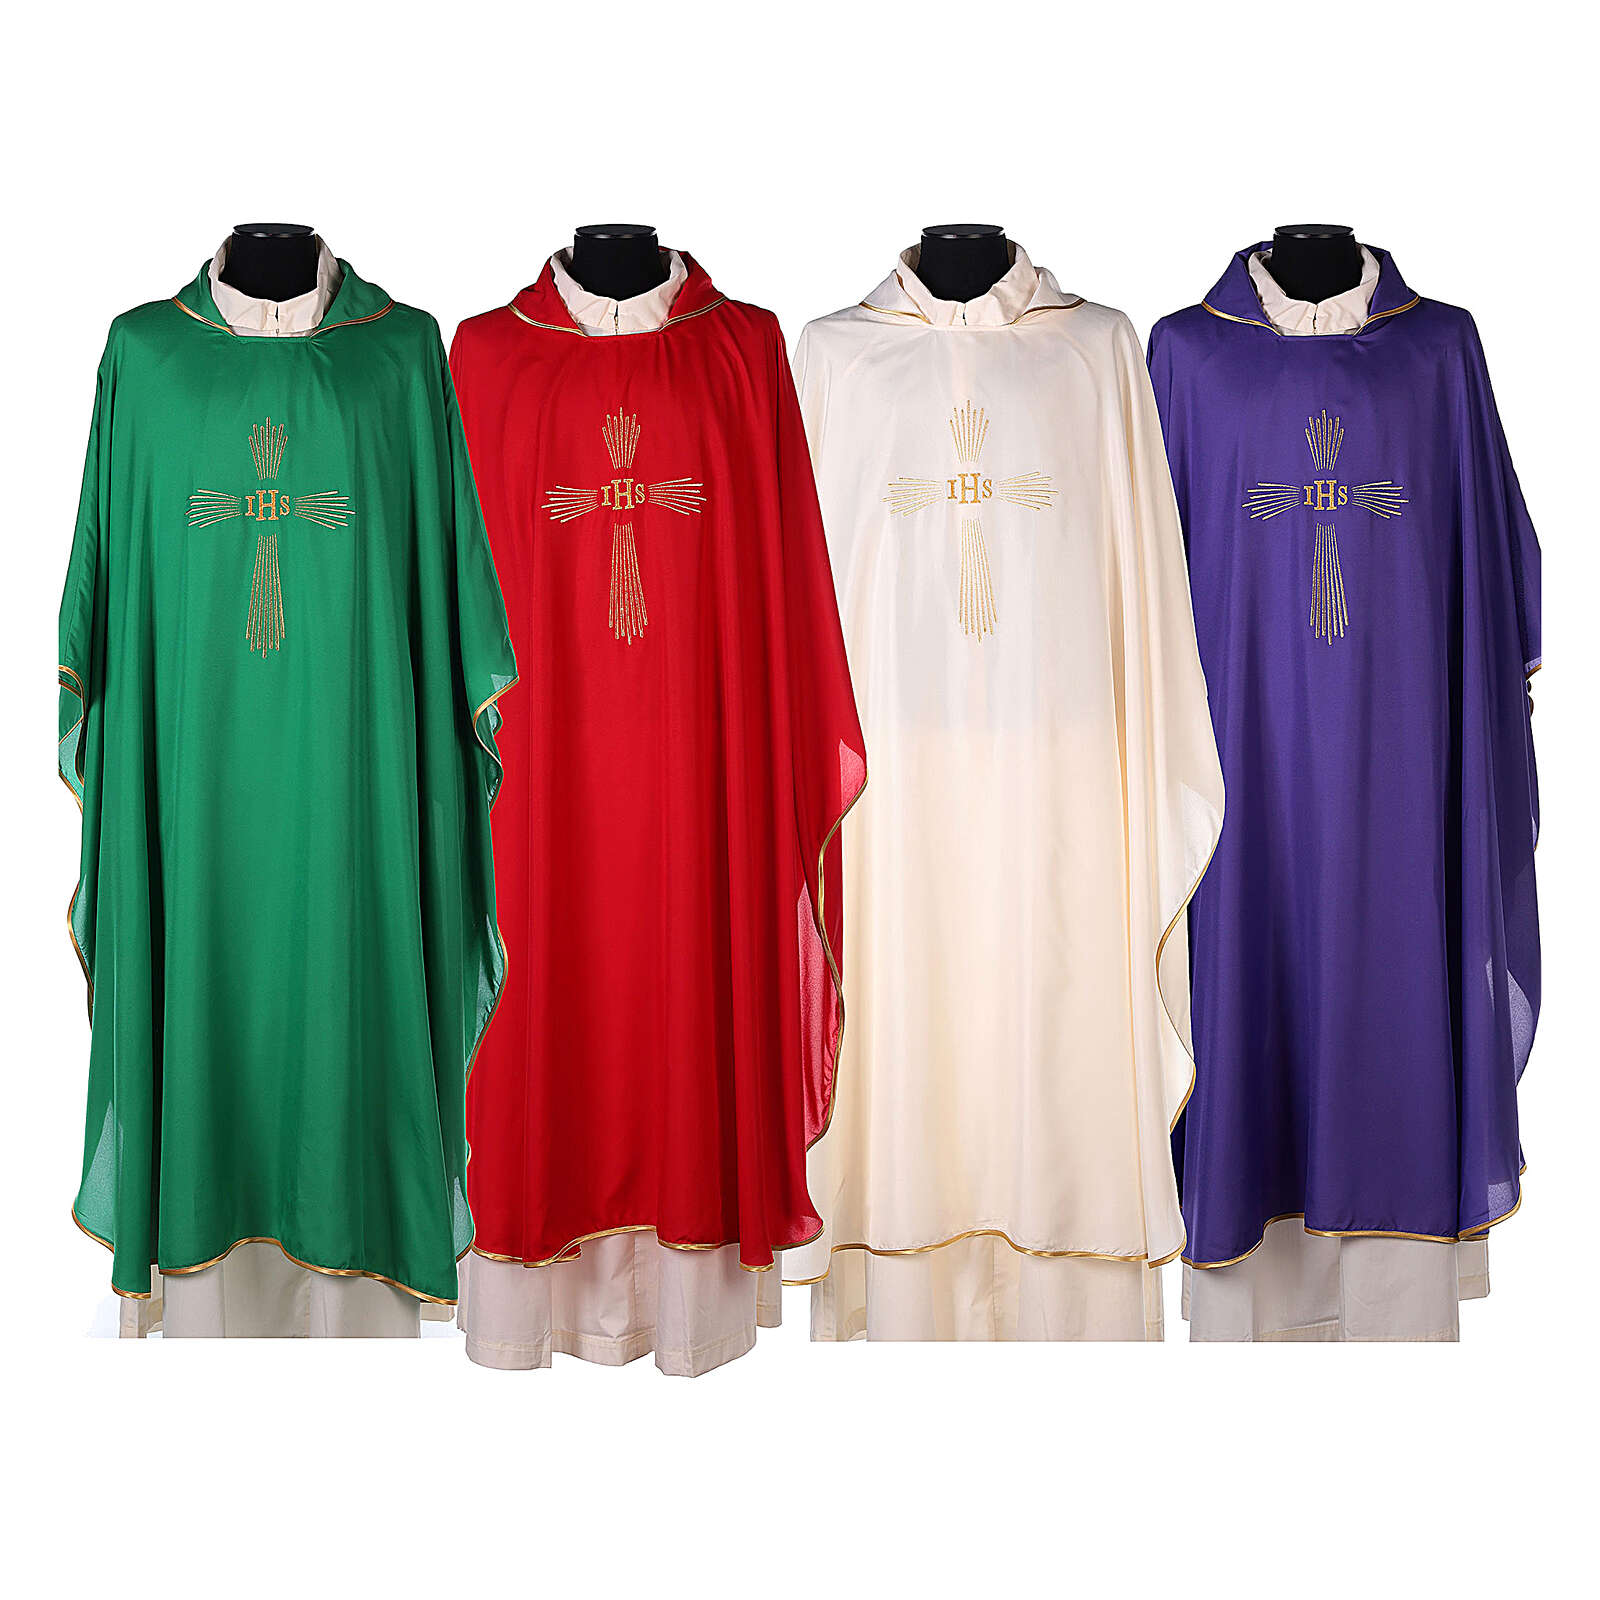 Chasuble 100% polyester 4 couleurs IHS croix rayons REDUCTION 4